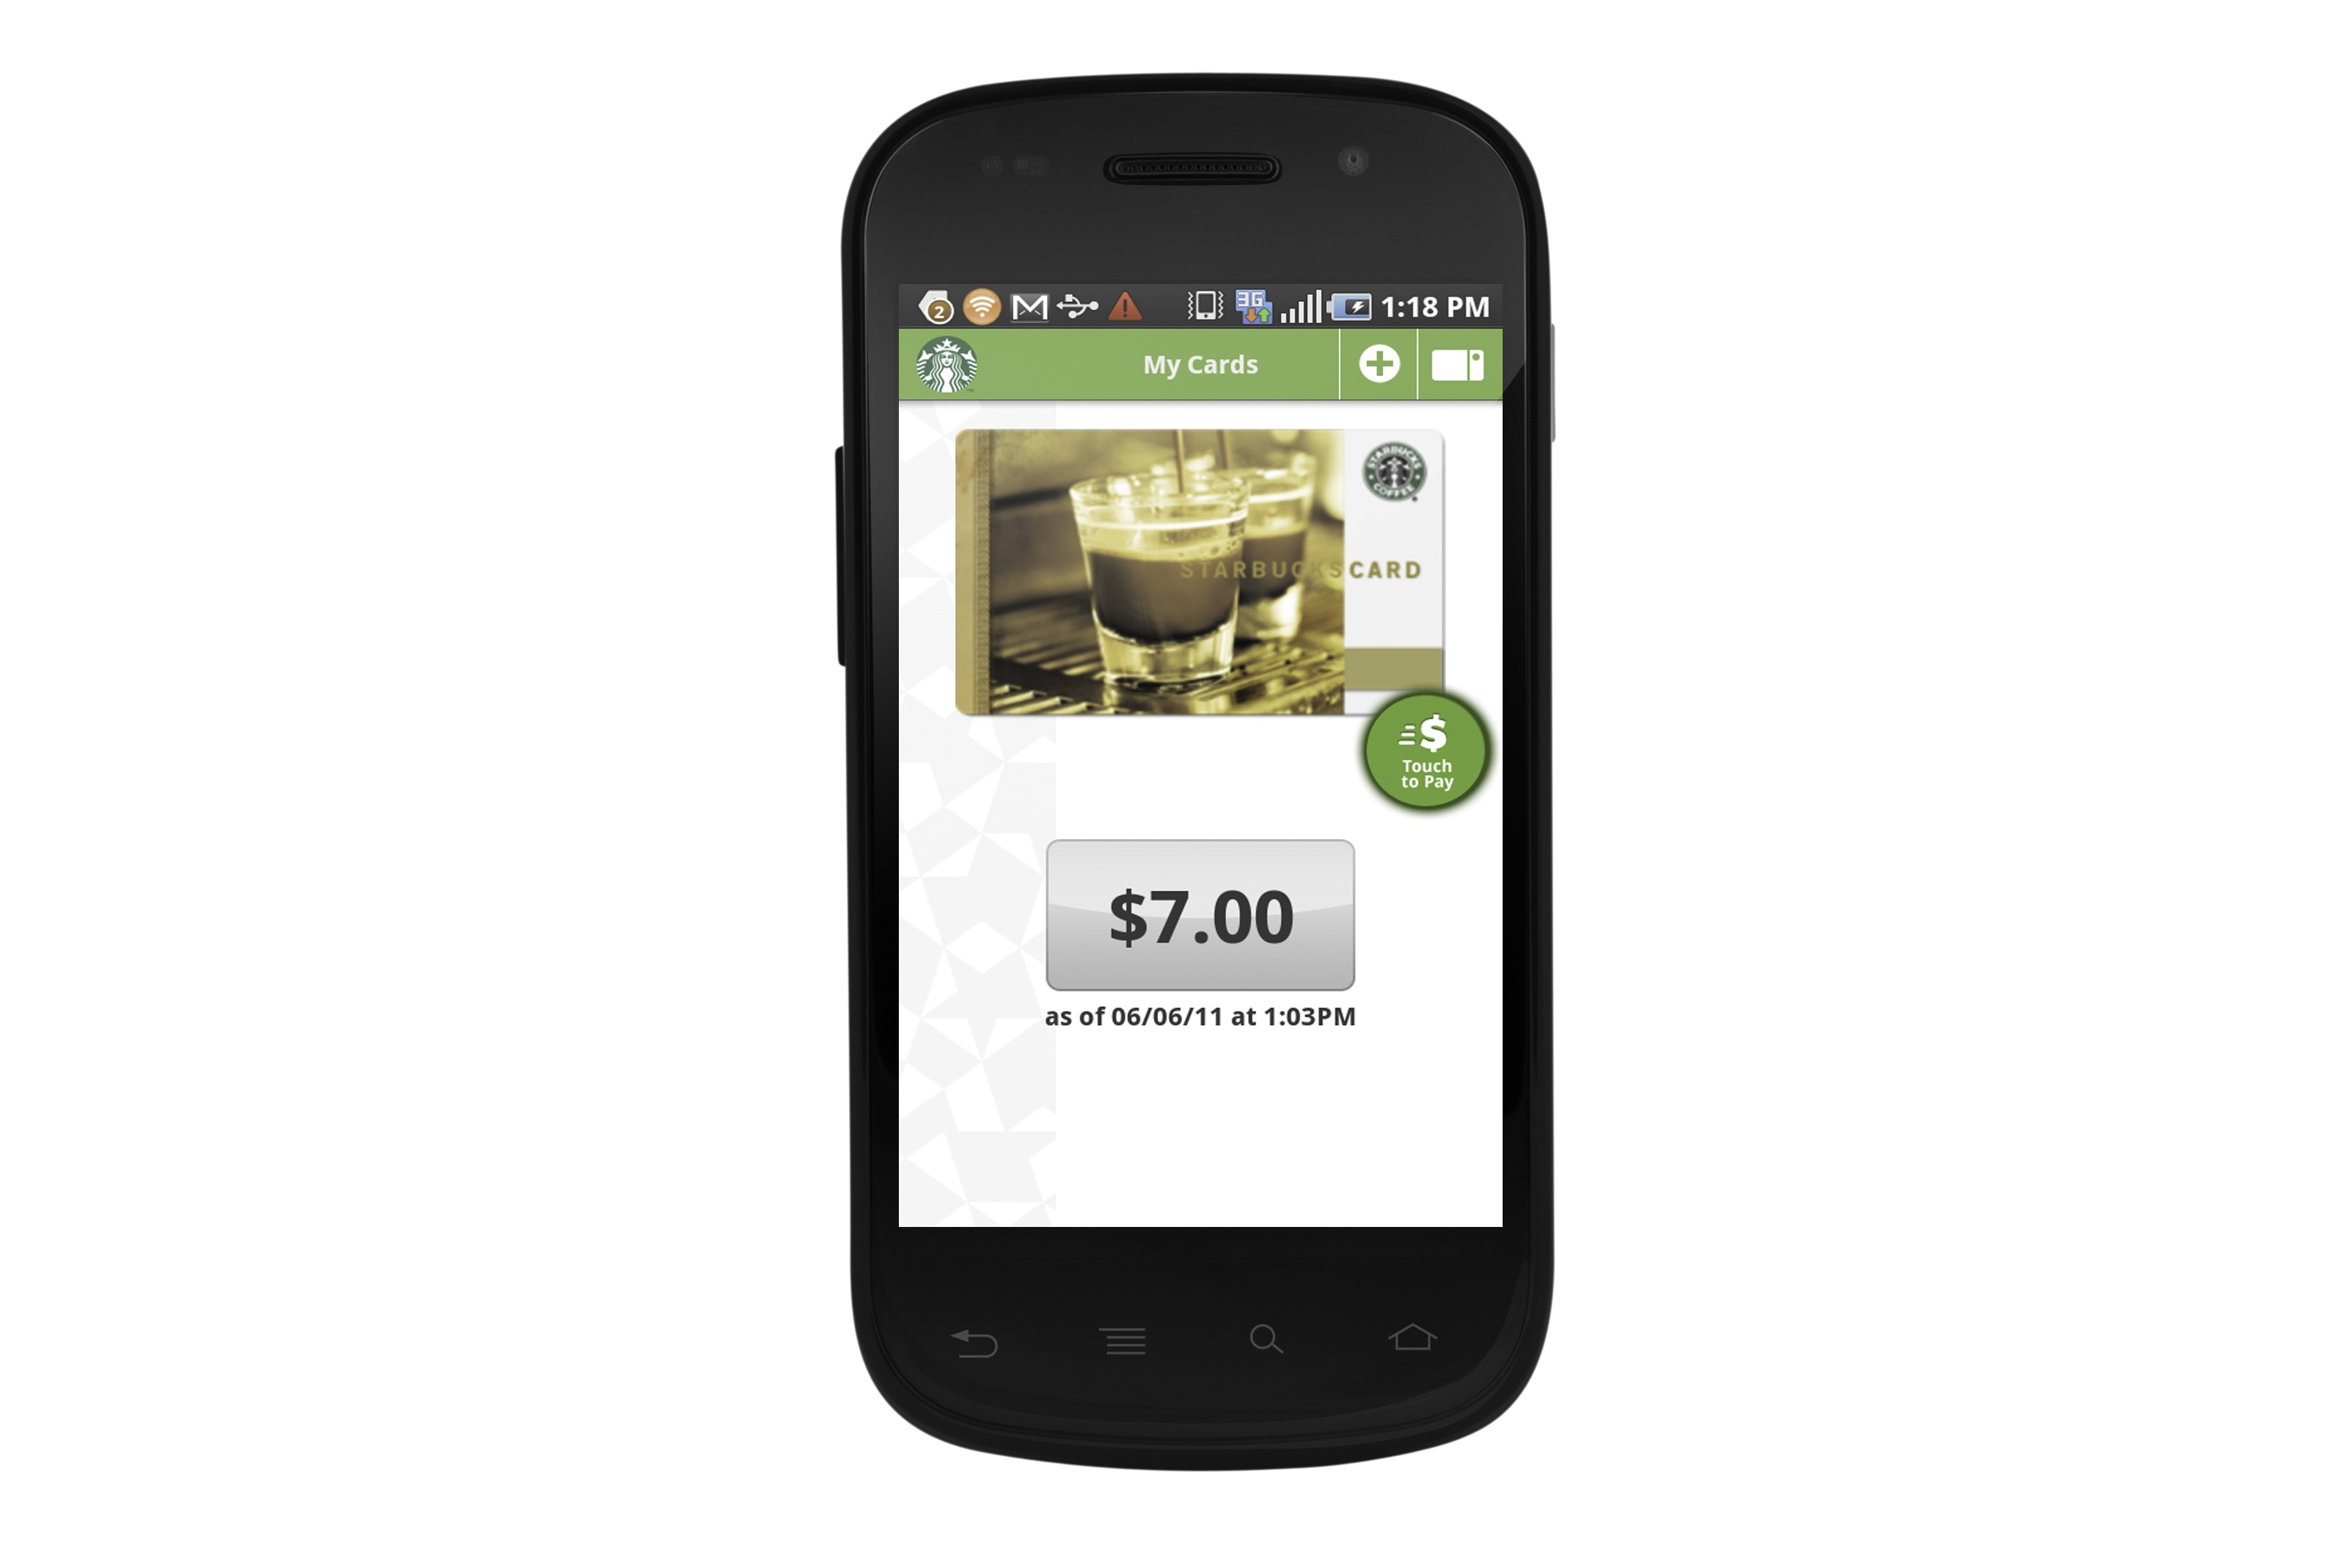 Starbucks_Android_MyCardsTouchToPay